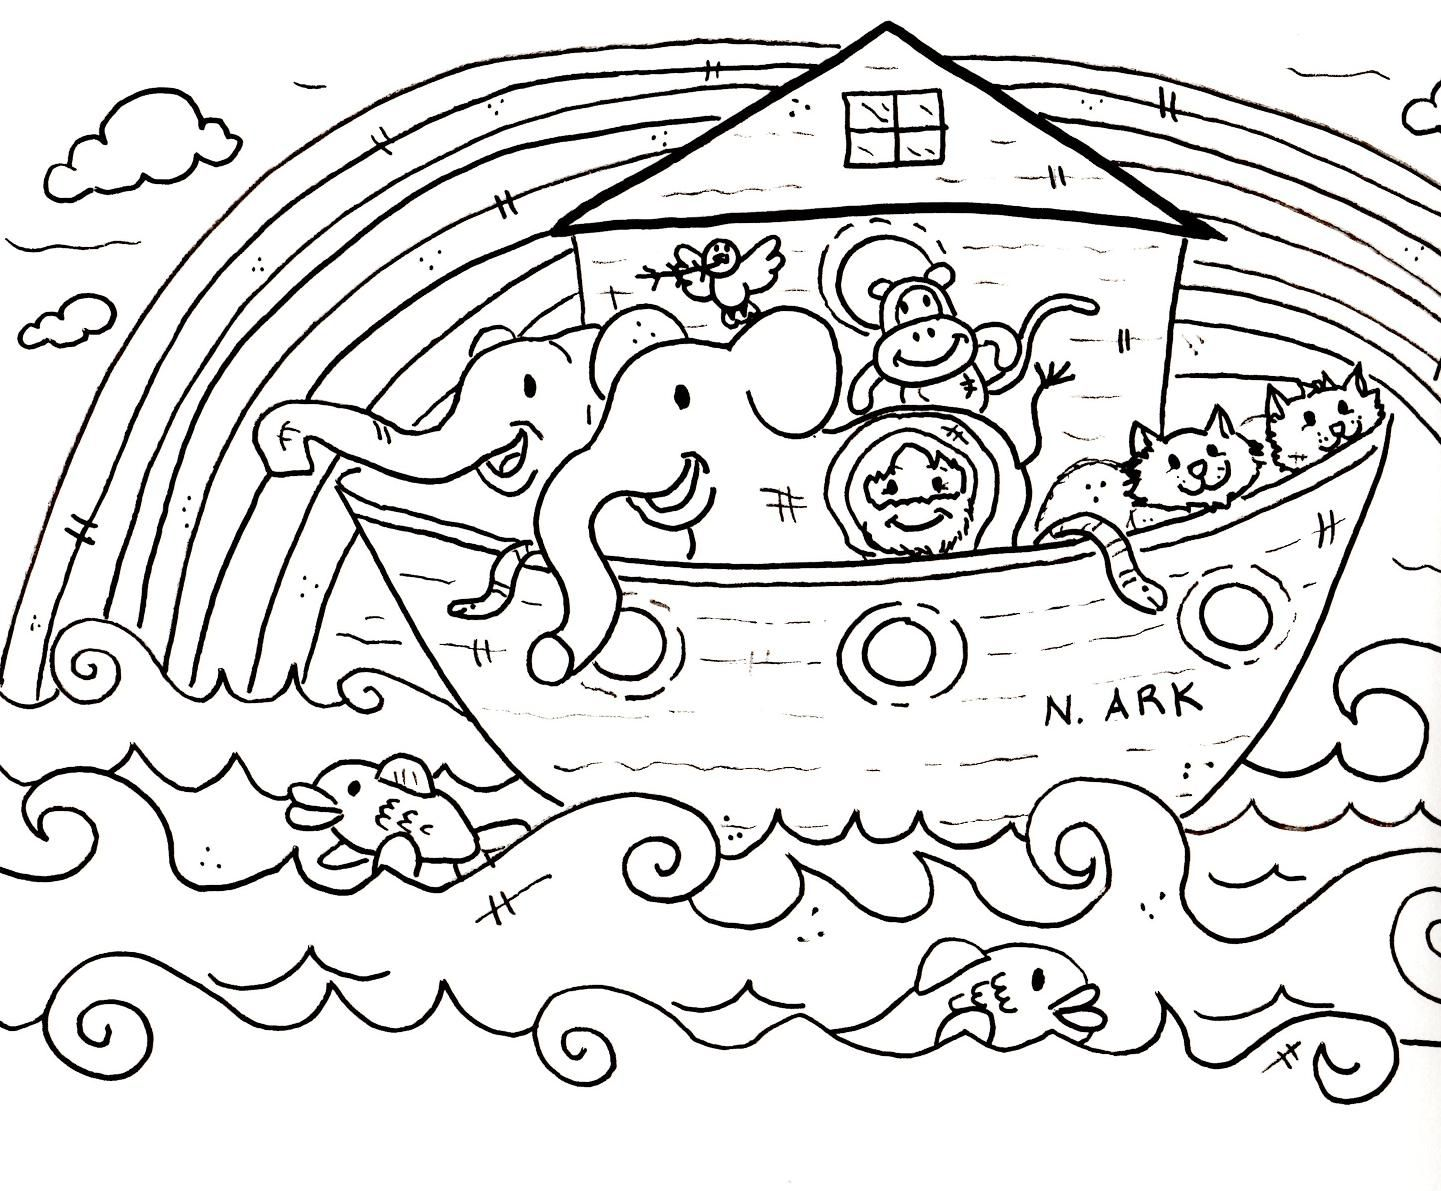 Free coloring pages bible - Children Coloring Pages For Church Sunday School Coloring